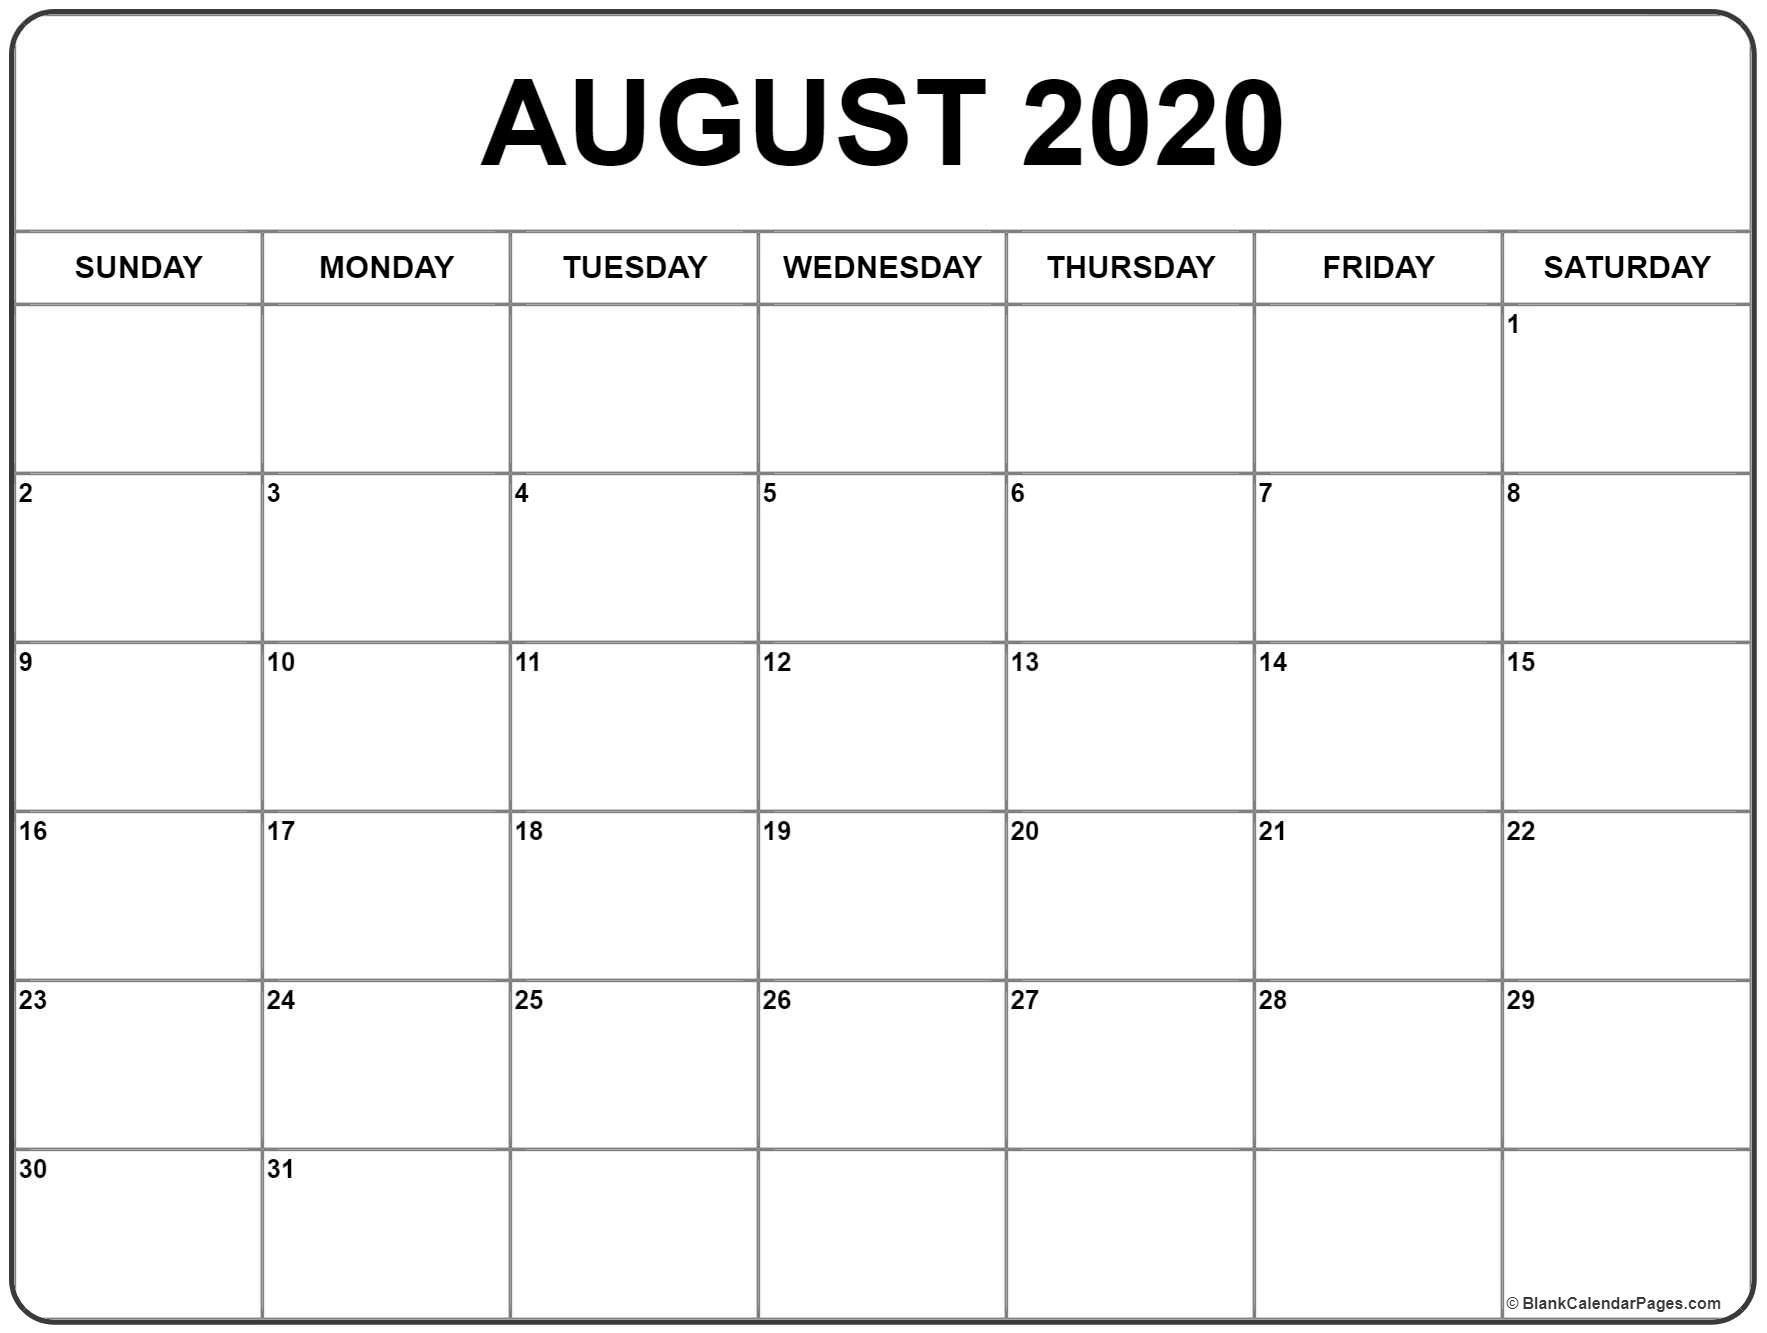 August 2020 Calendar | Monthly Calendar Printable, Free in May June July August 2020 Calendar